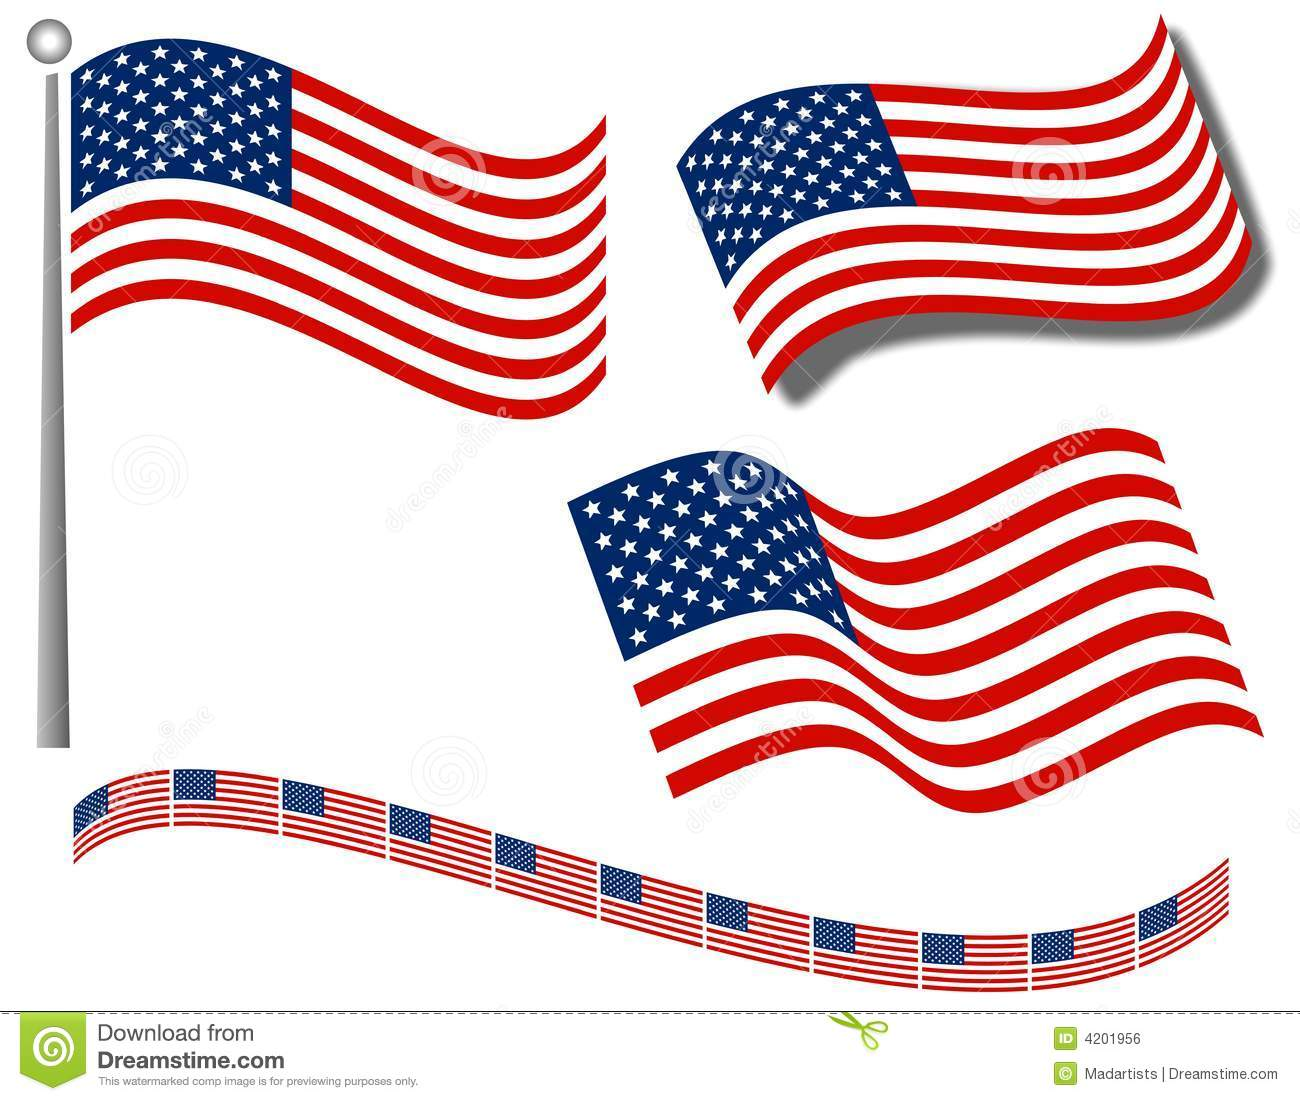 American Flags Clip Art And Divider Royalty Free Stock Image.